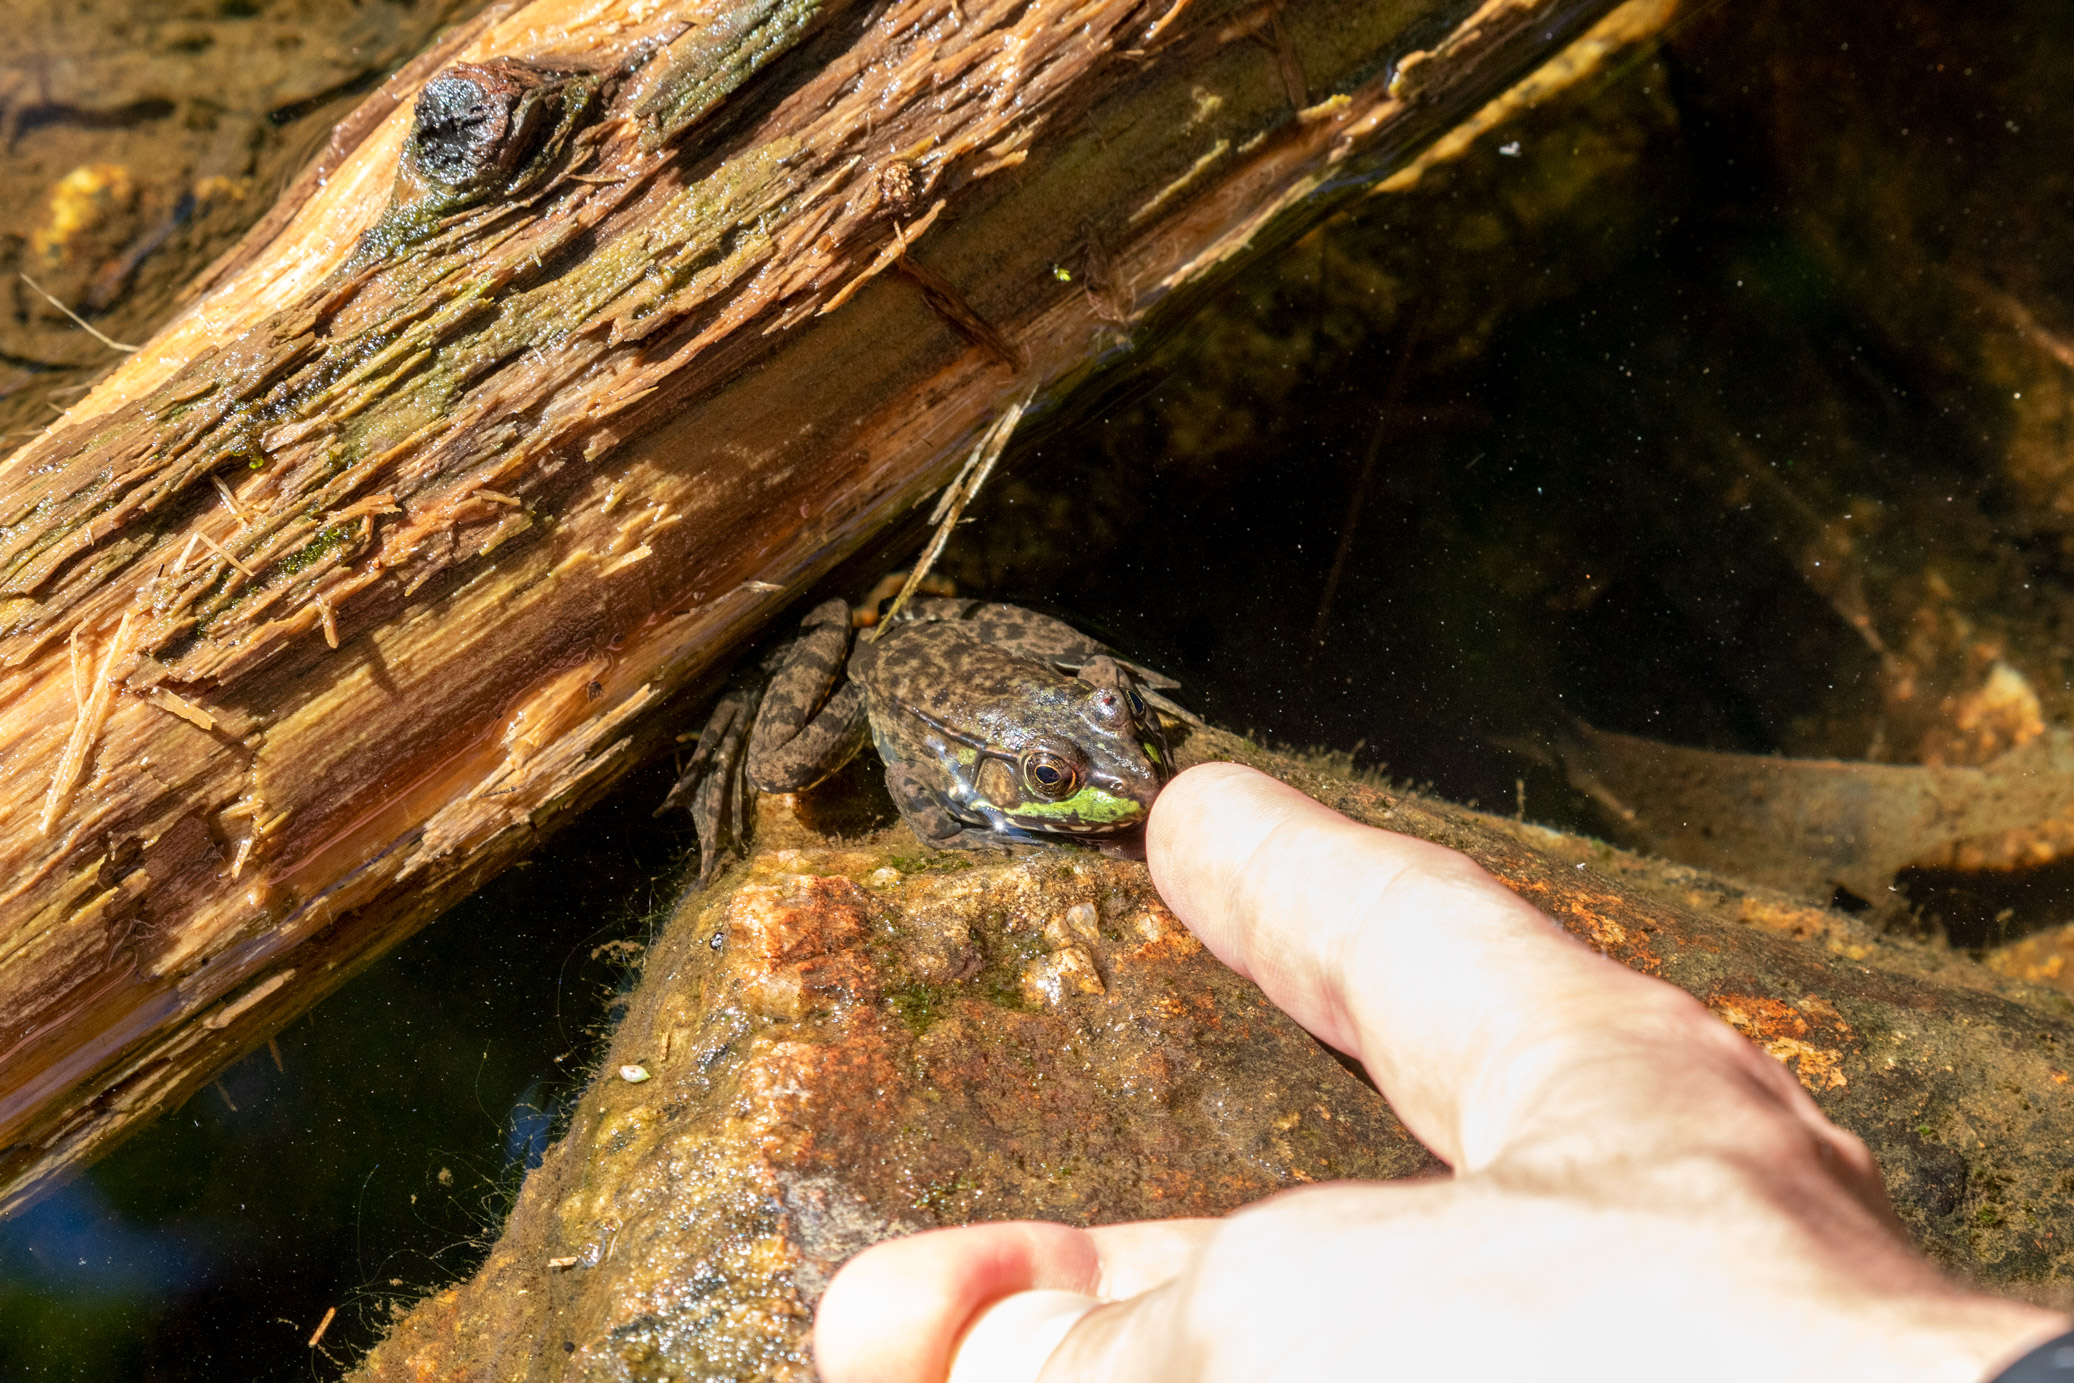 Frog sitting in shallow water beside a soggy log and being lightly booped by a finger